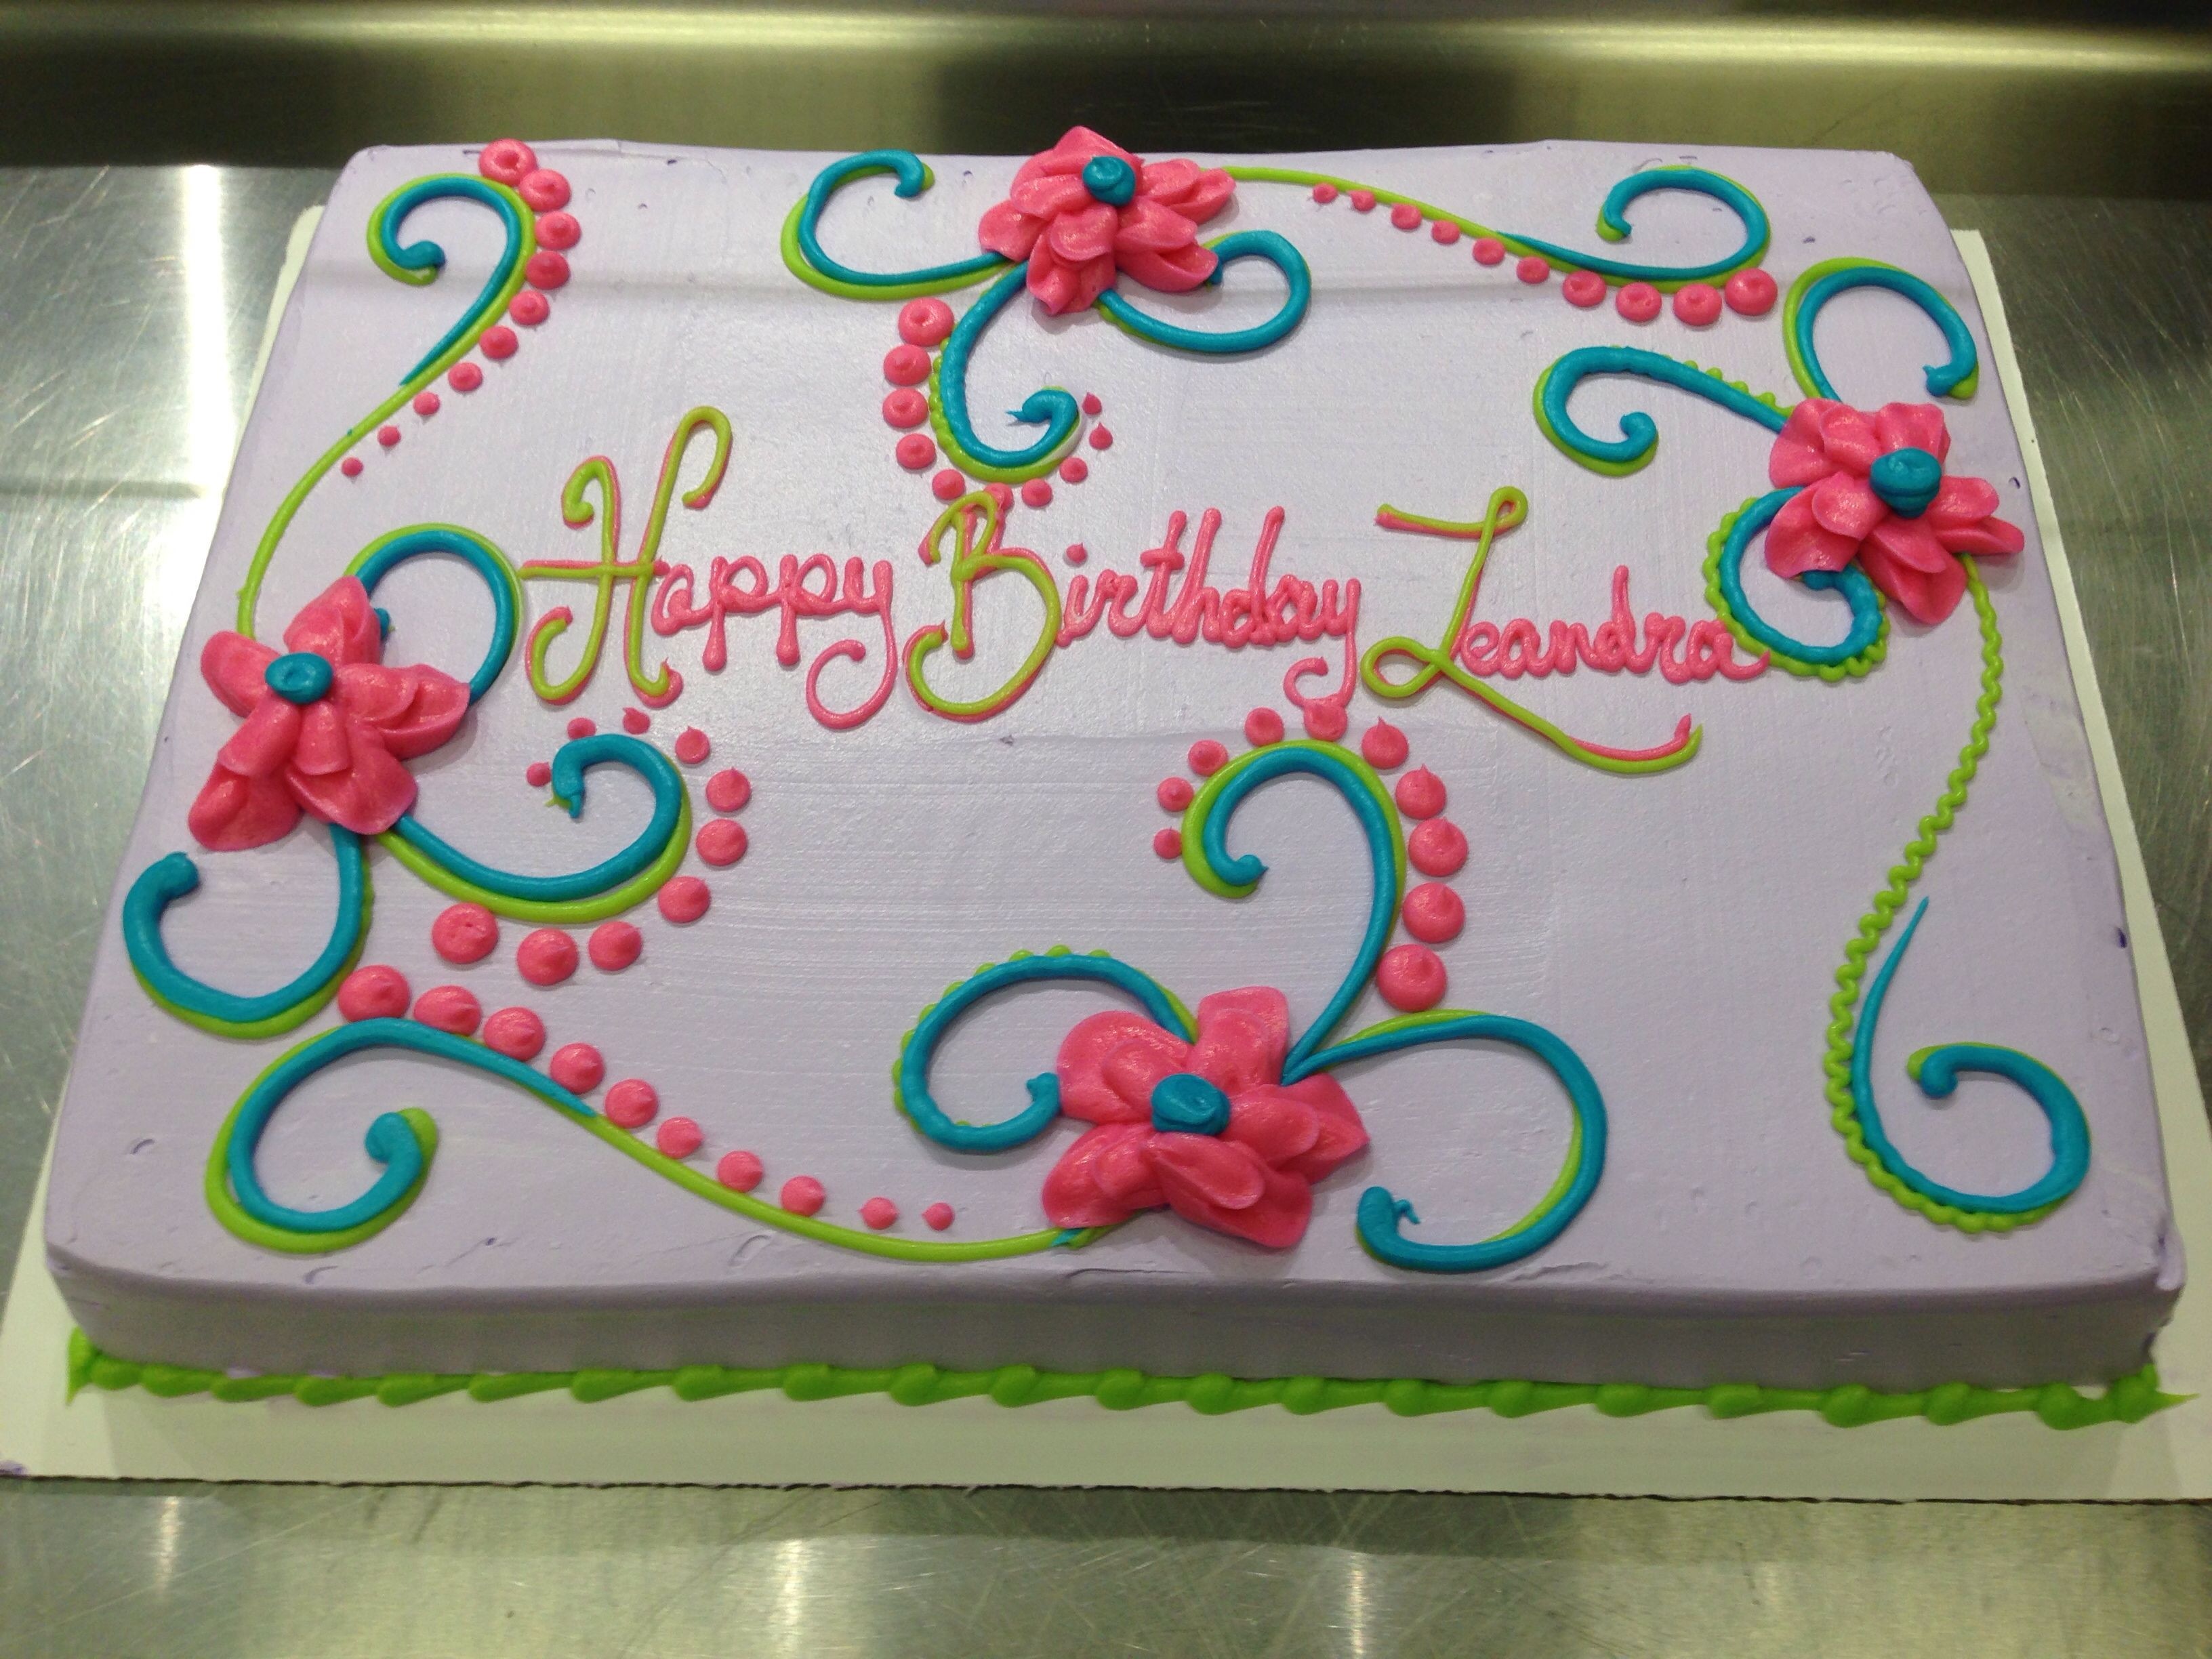 Best ideas about Birthday Sheet Cake . Save or Pin Scrolls and flowers girly birthday cake Now.